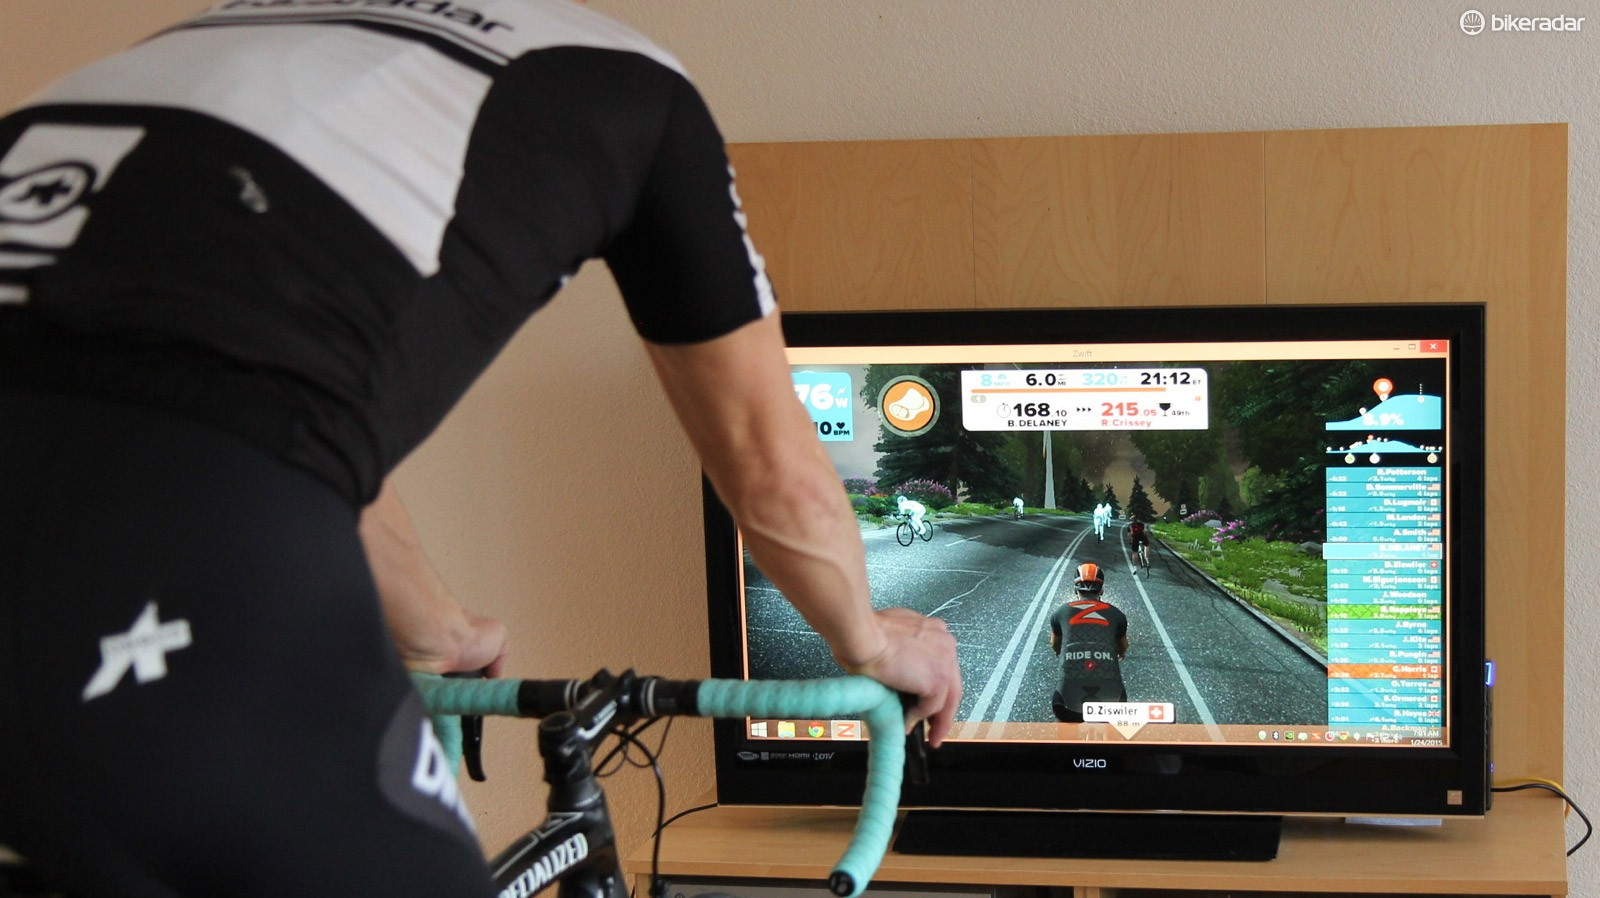 Zwift is an online software. Here, we connected a computer to a TV for a better viewing experience. (Typically we just take the laptop in the garage)